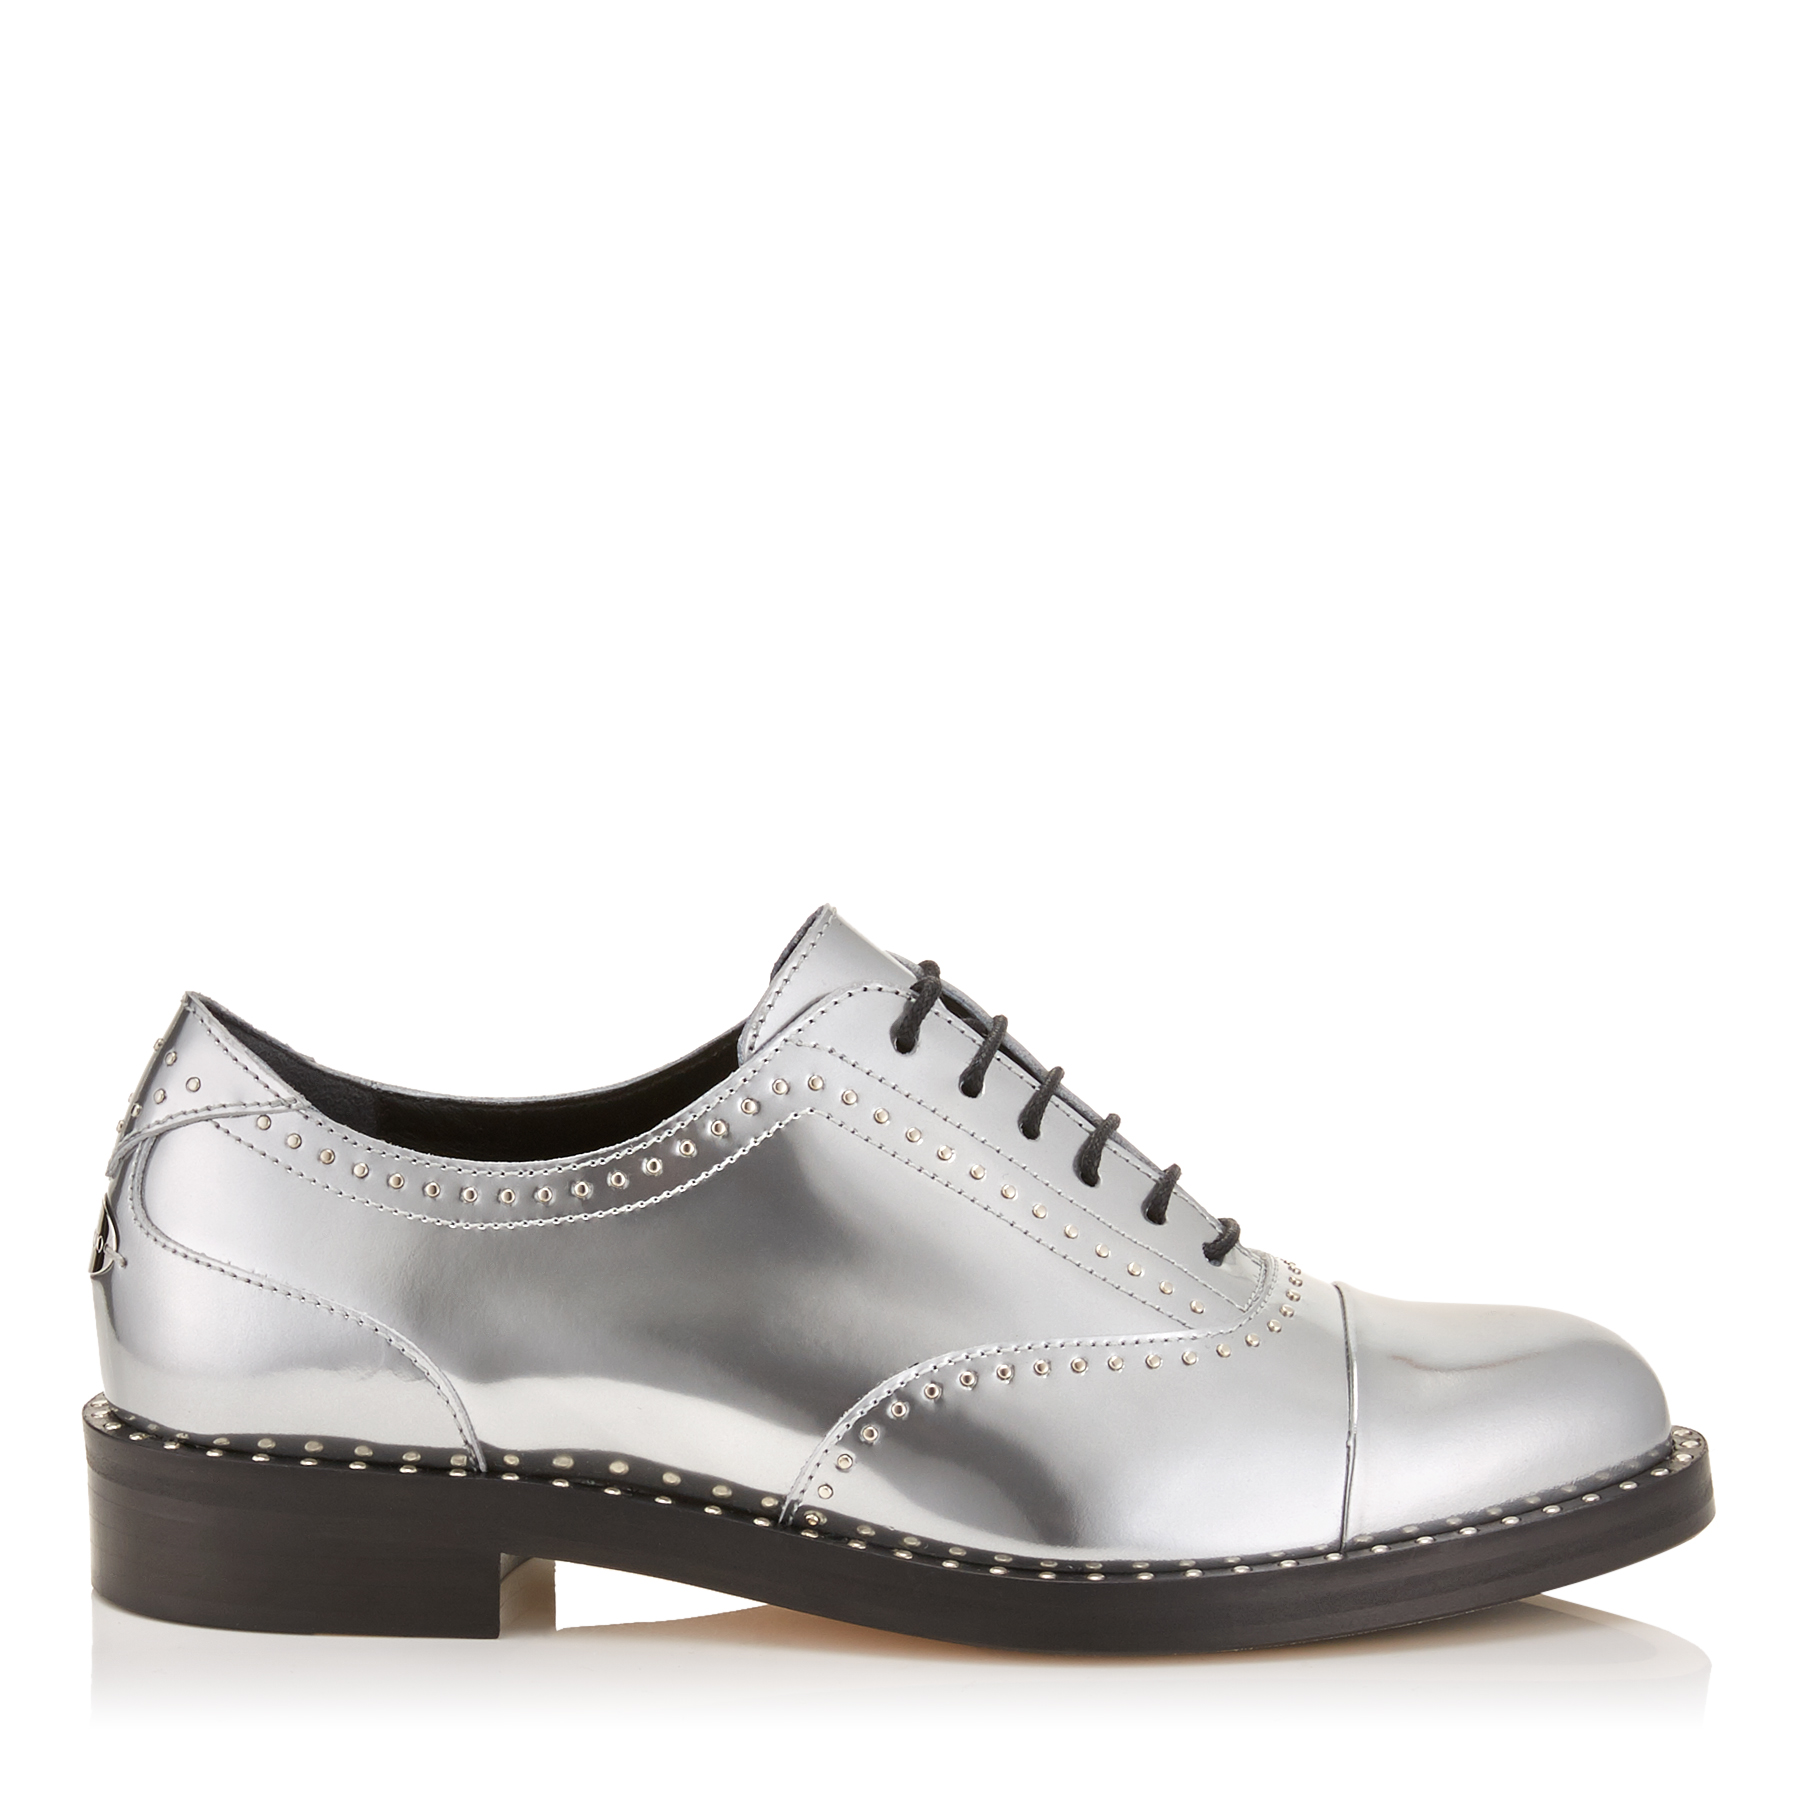 REEVE FLAT Silver Liquid Mirror Leather Brogues with Micro Studs